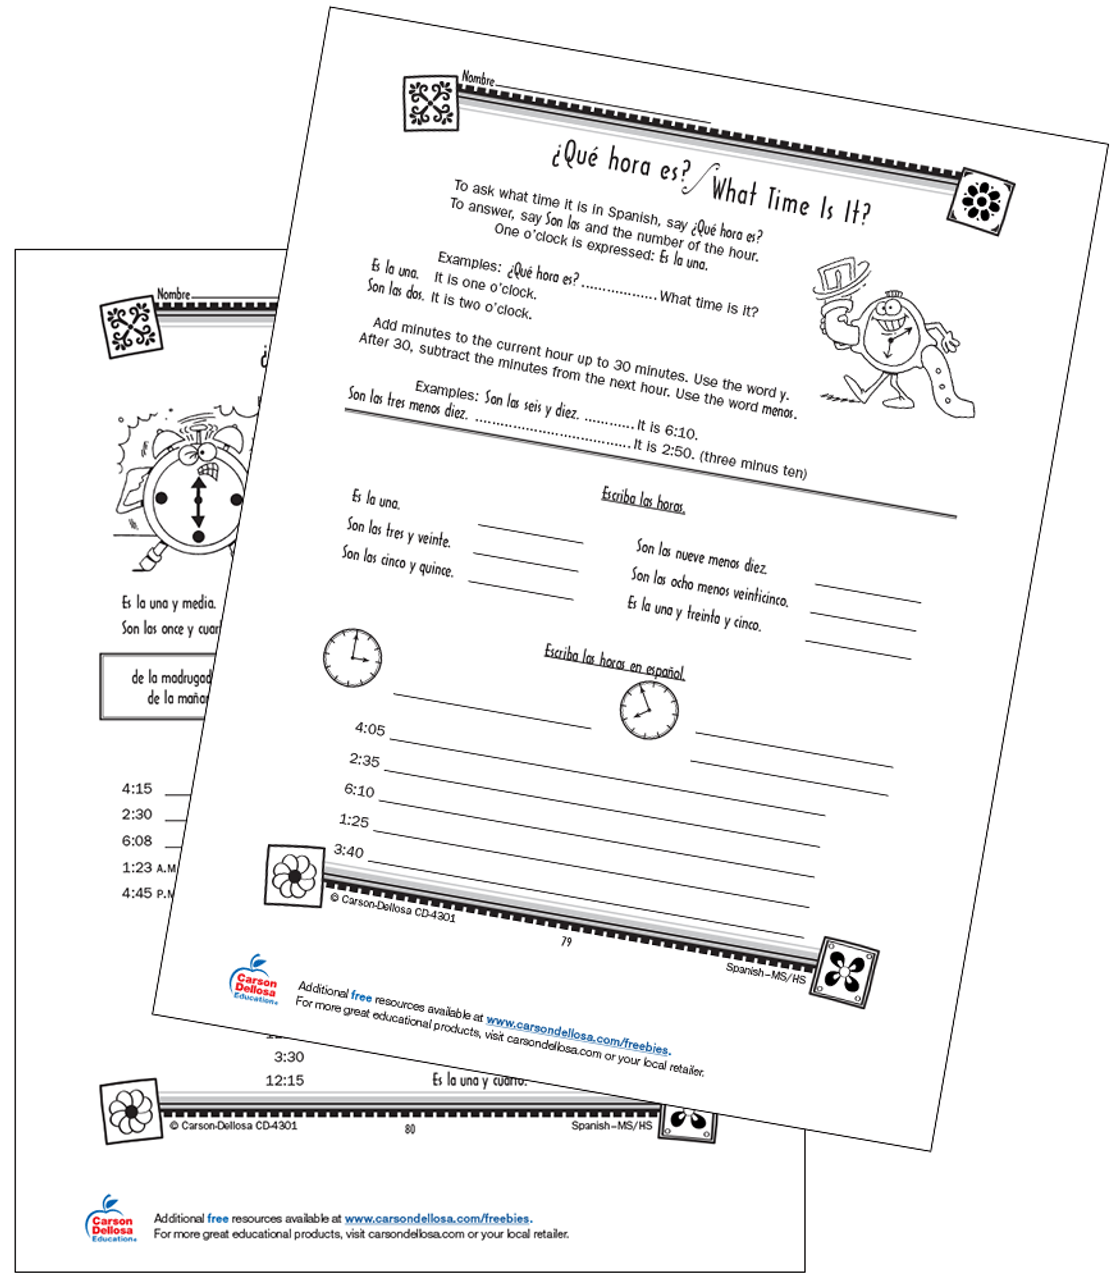 Time Vocabulary and Expressions Grade 6-12 Spanish Free Printable   Carson  Dellosa [ 1280 x 1120 Pixel ]